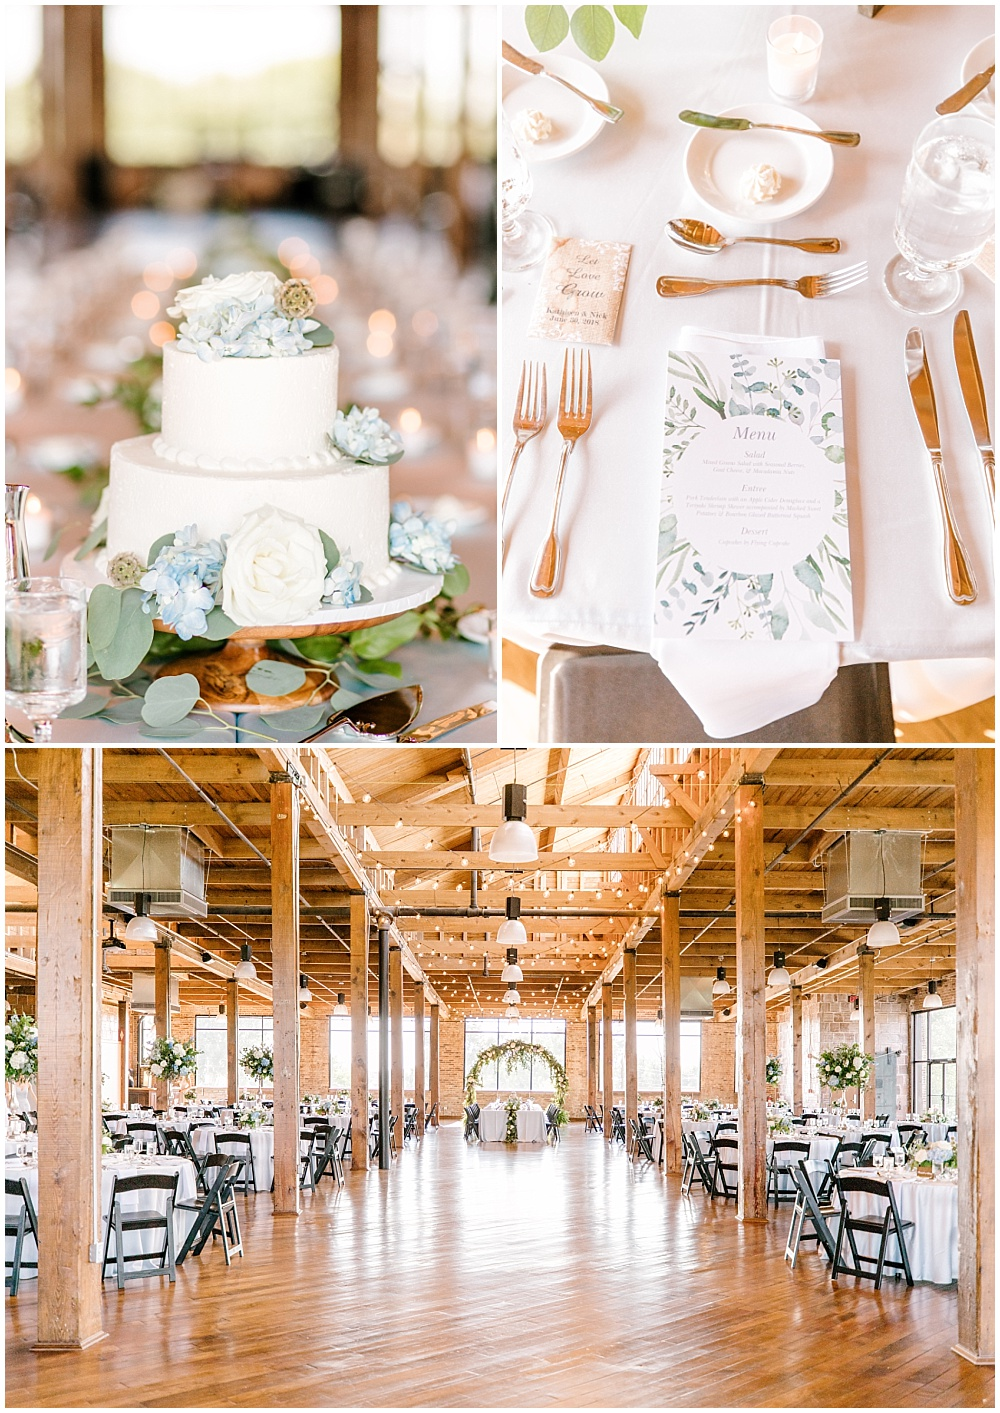 A rustic chic summer wedding with a floral and greenery Head Table arch with greenery cascading down the center. Along with a simple white cutting cake adorned with blue and white flowers and a rustic cake stand. A blue and green watercolored menu was placed at each guest setting. | NFL Player Nick Martin's rustic chic summer wedding at the Biltwell Event Center